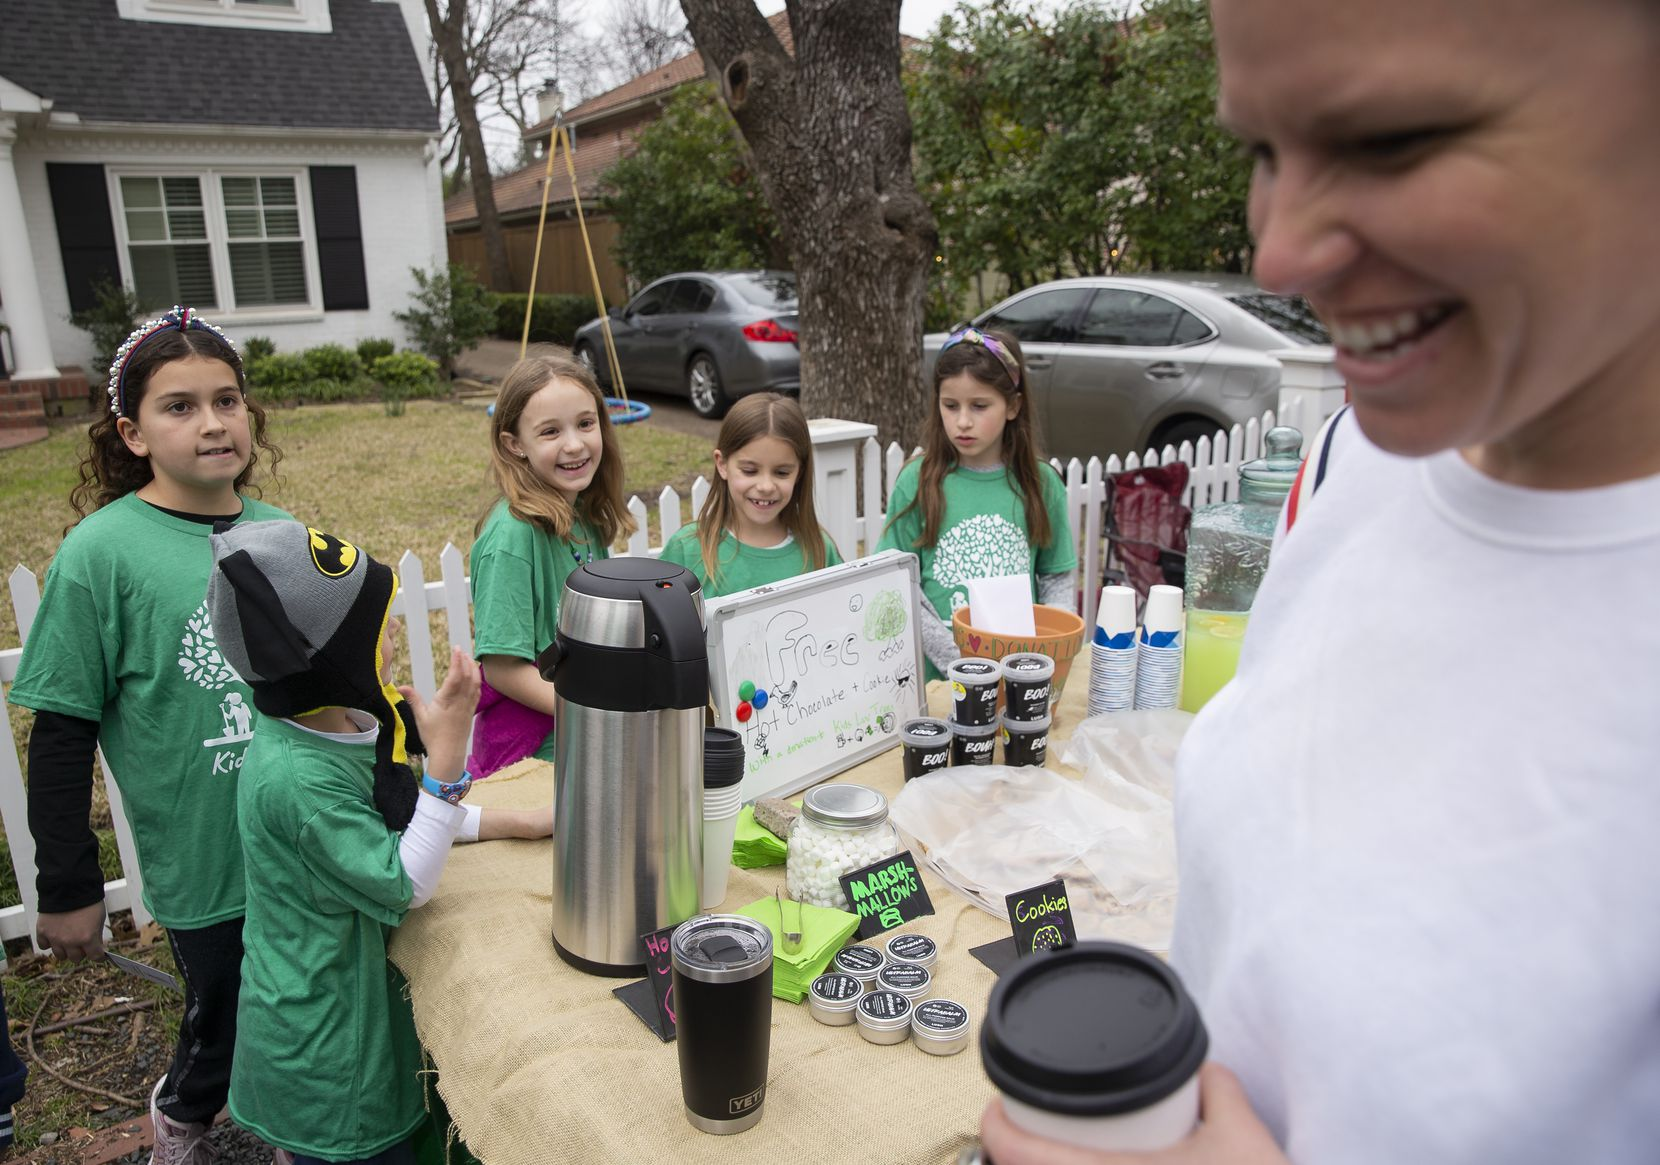 Hot chocolate from the Kids Luv Trees fundraiser put a smile on Shannon O'Brien's face.